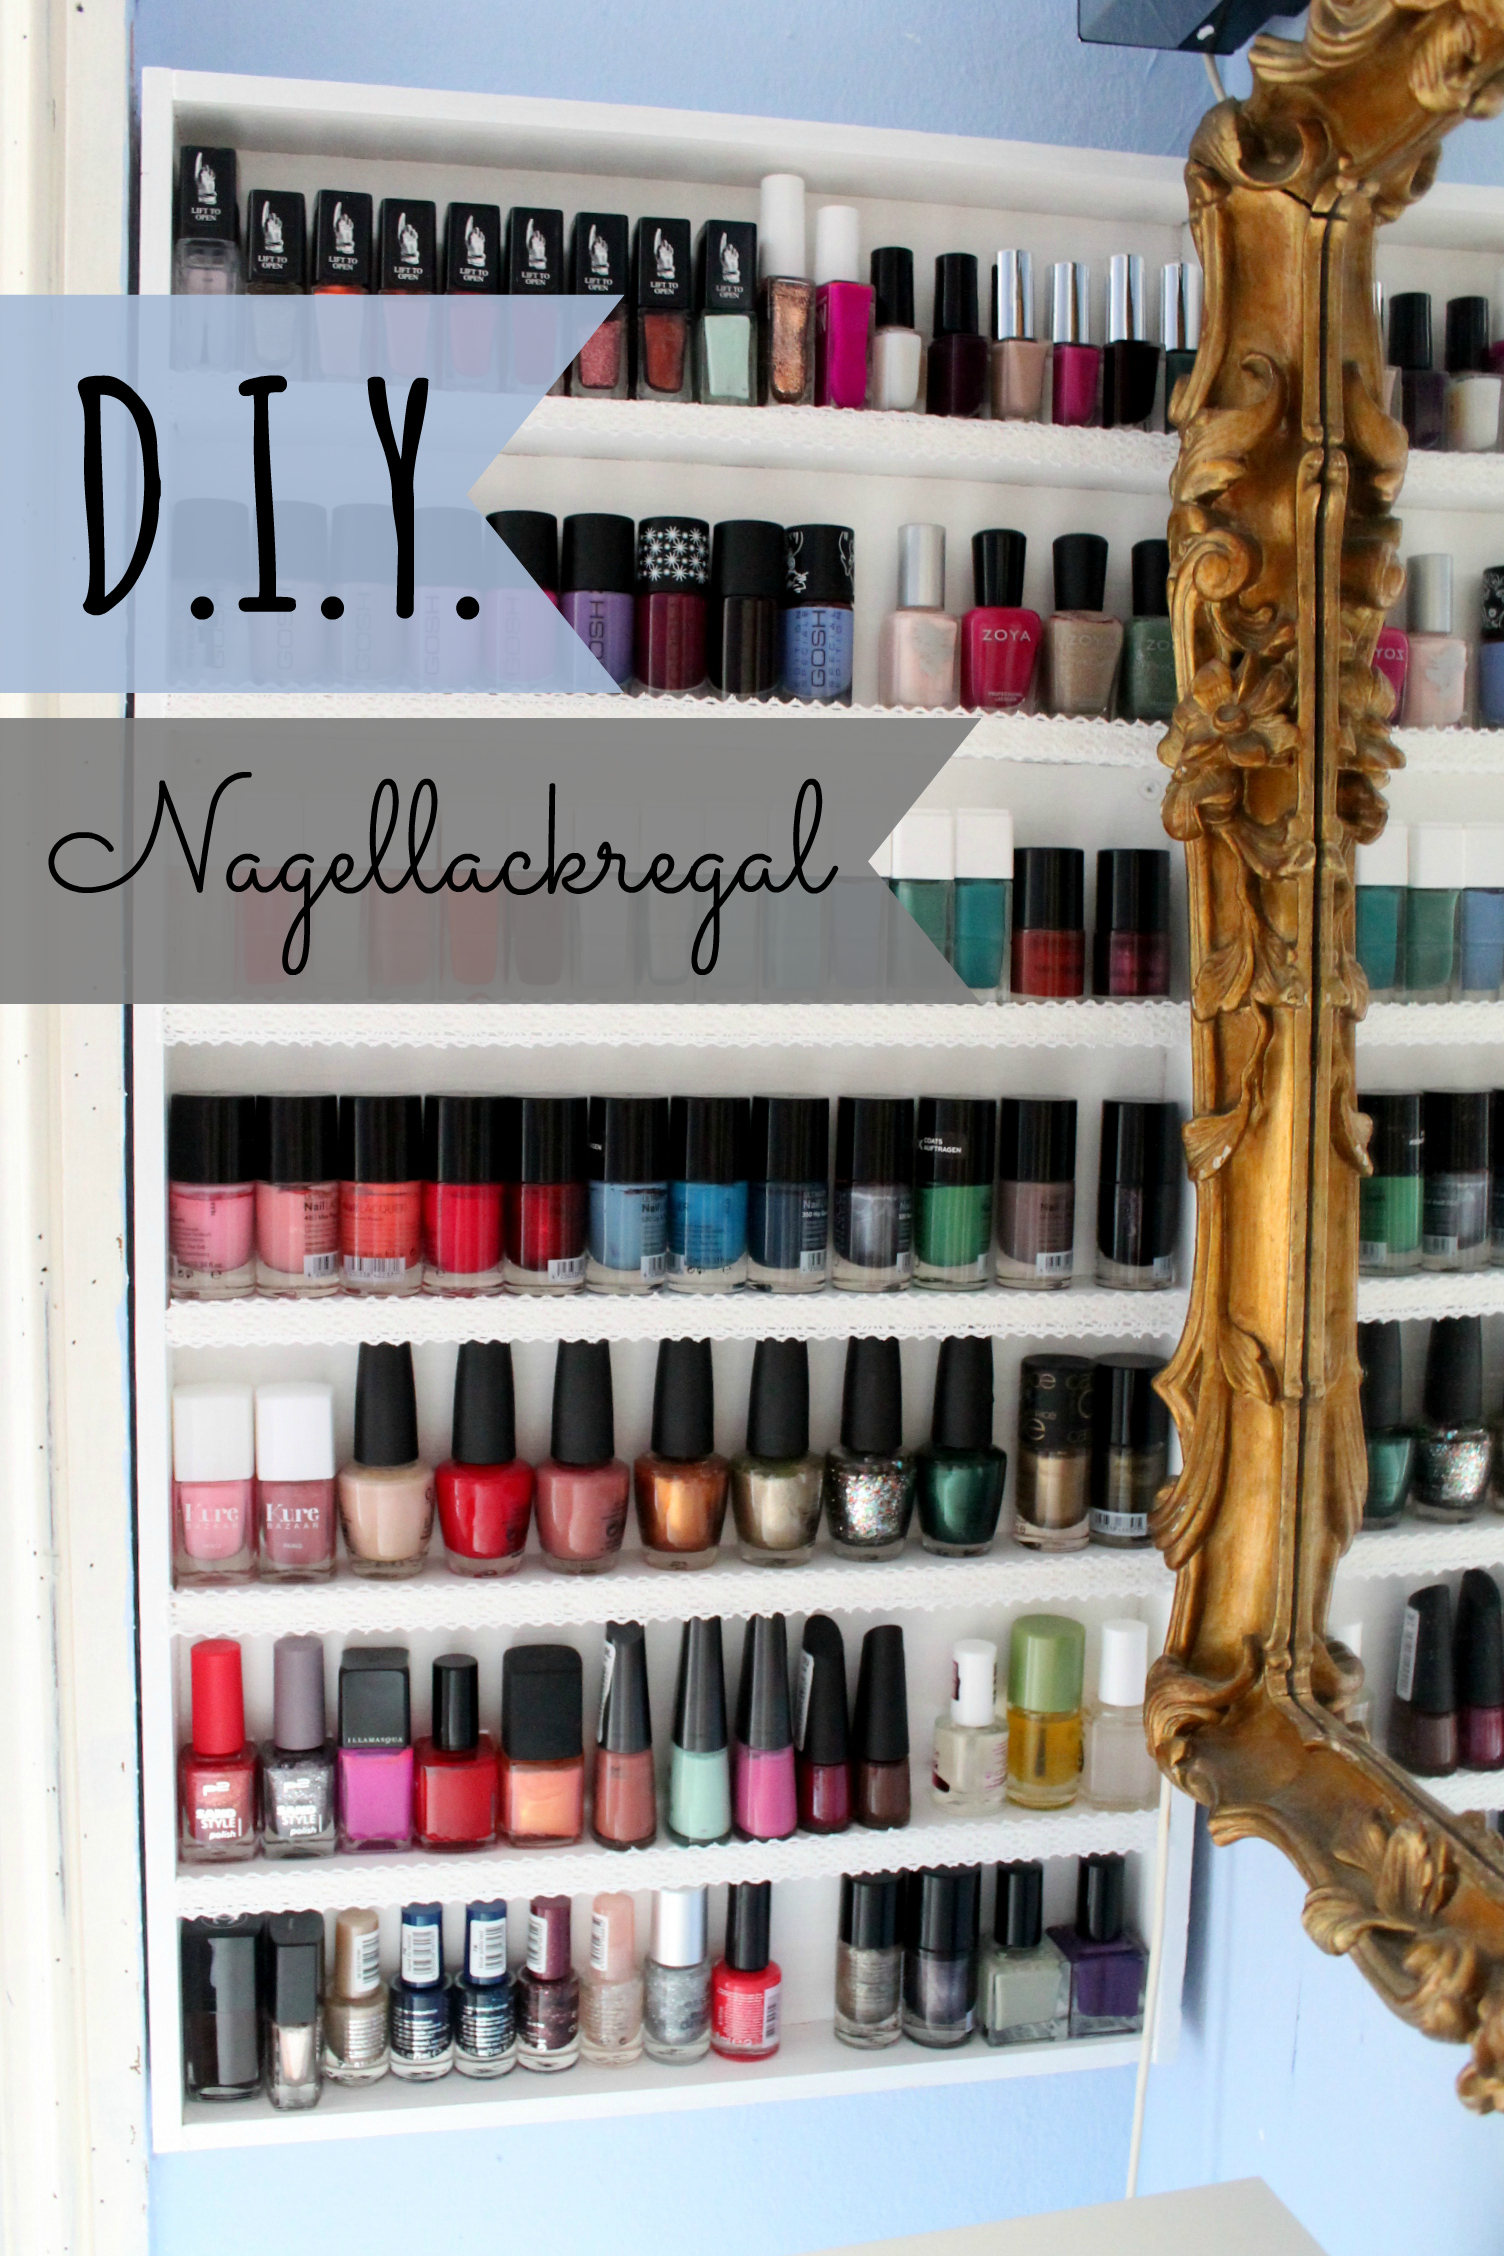 diy nagellackregal once upon a cream vegan beauty blog. Black Bedroom Furniture Sets. Home Design Ideas